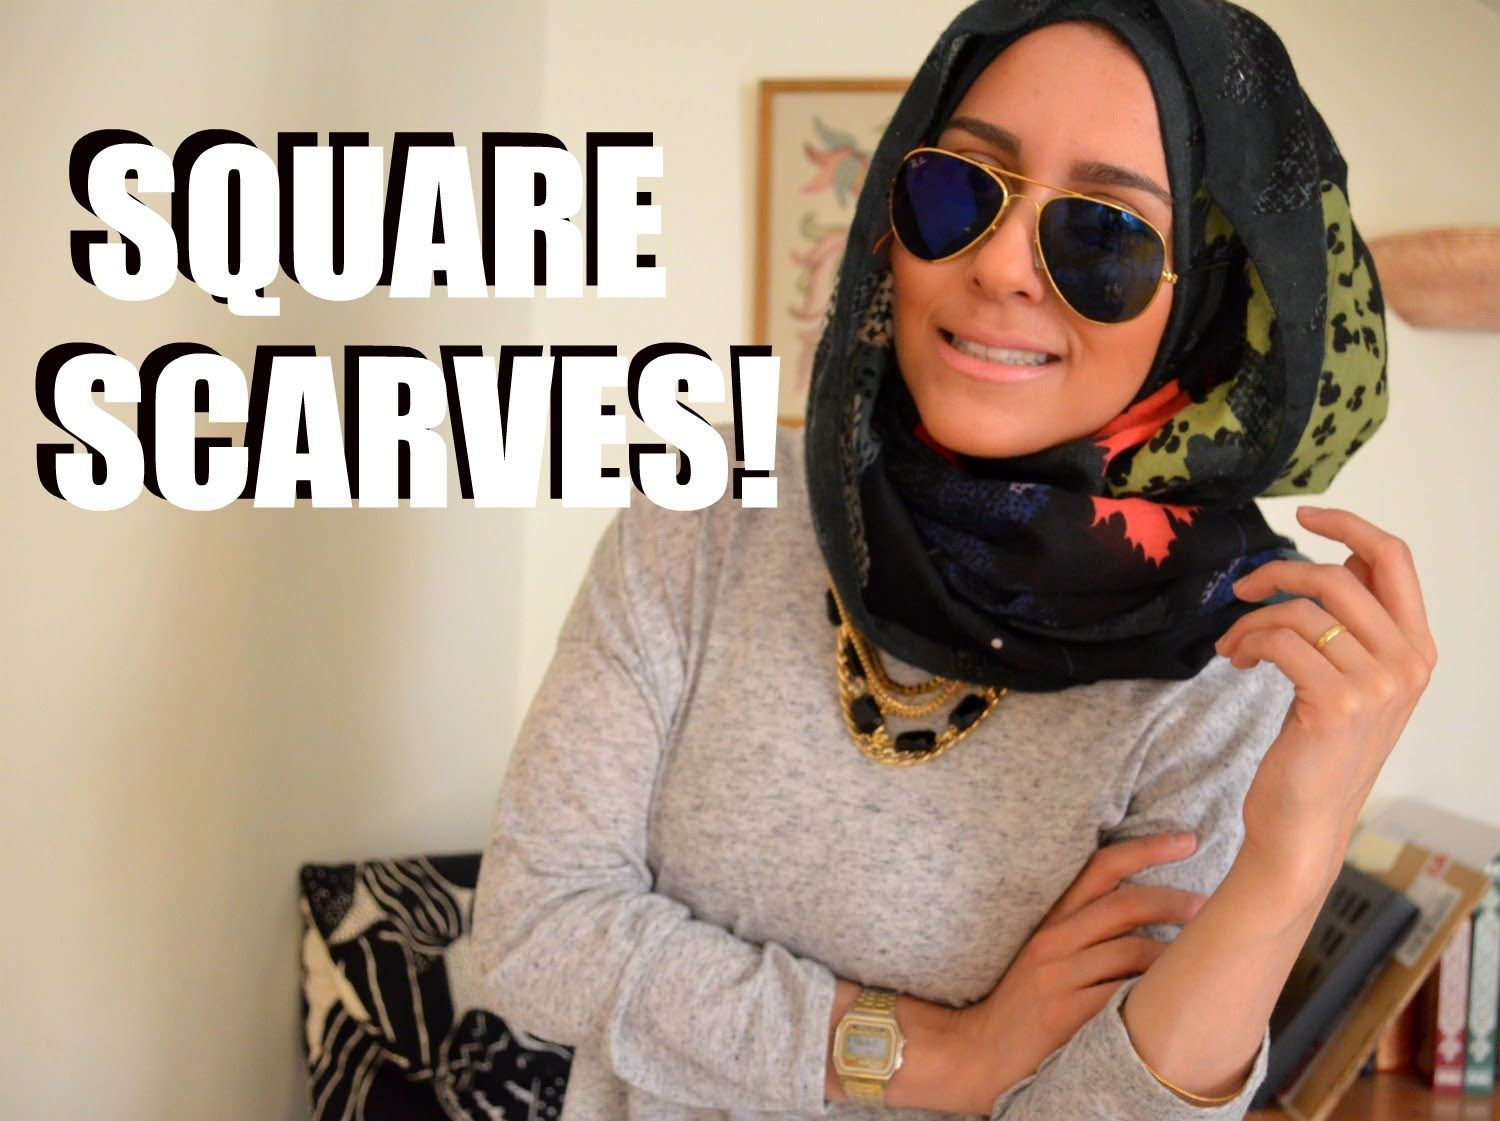 HOW TO WEAR A SQUARE SCARF Head Scarf Tying Pinterest